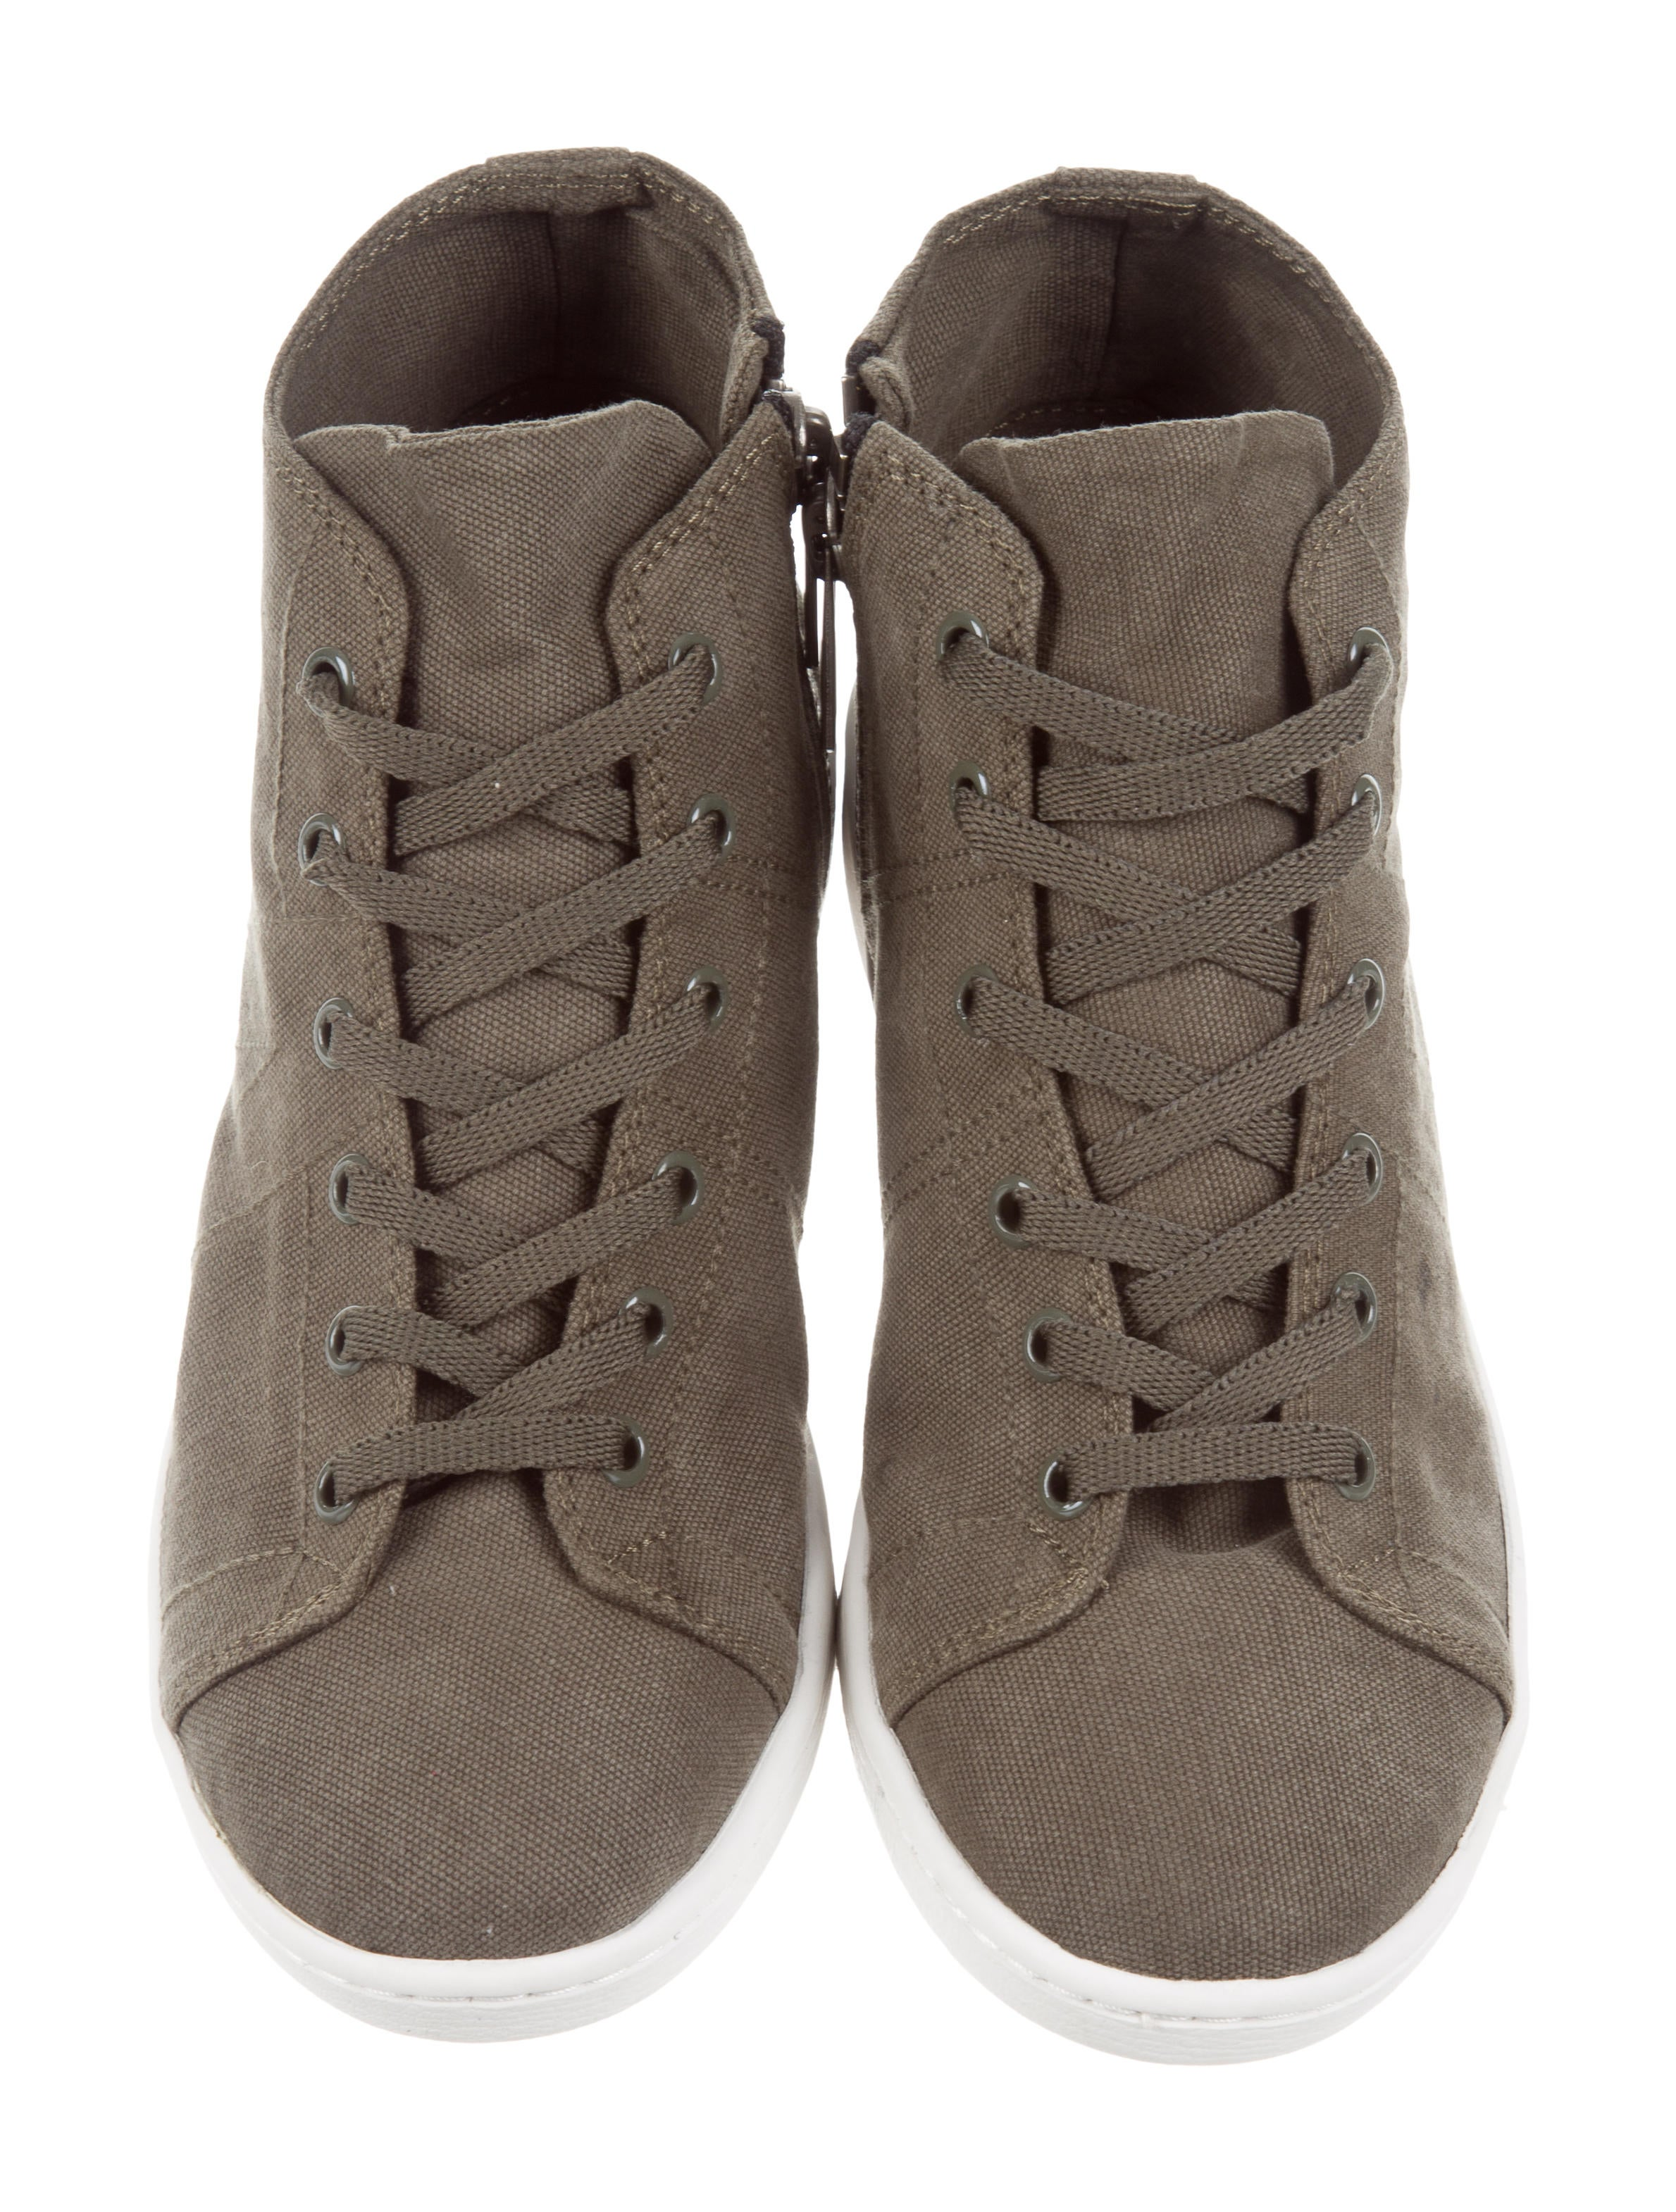 best sale for sale Anine Bing Lily Canvas Sneakers w/ Tags fashionable cheap price footlocker for sale cheap sale view Cheapest cheap price EcMuCviM